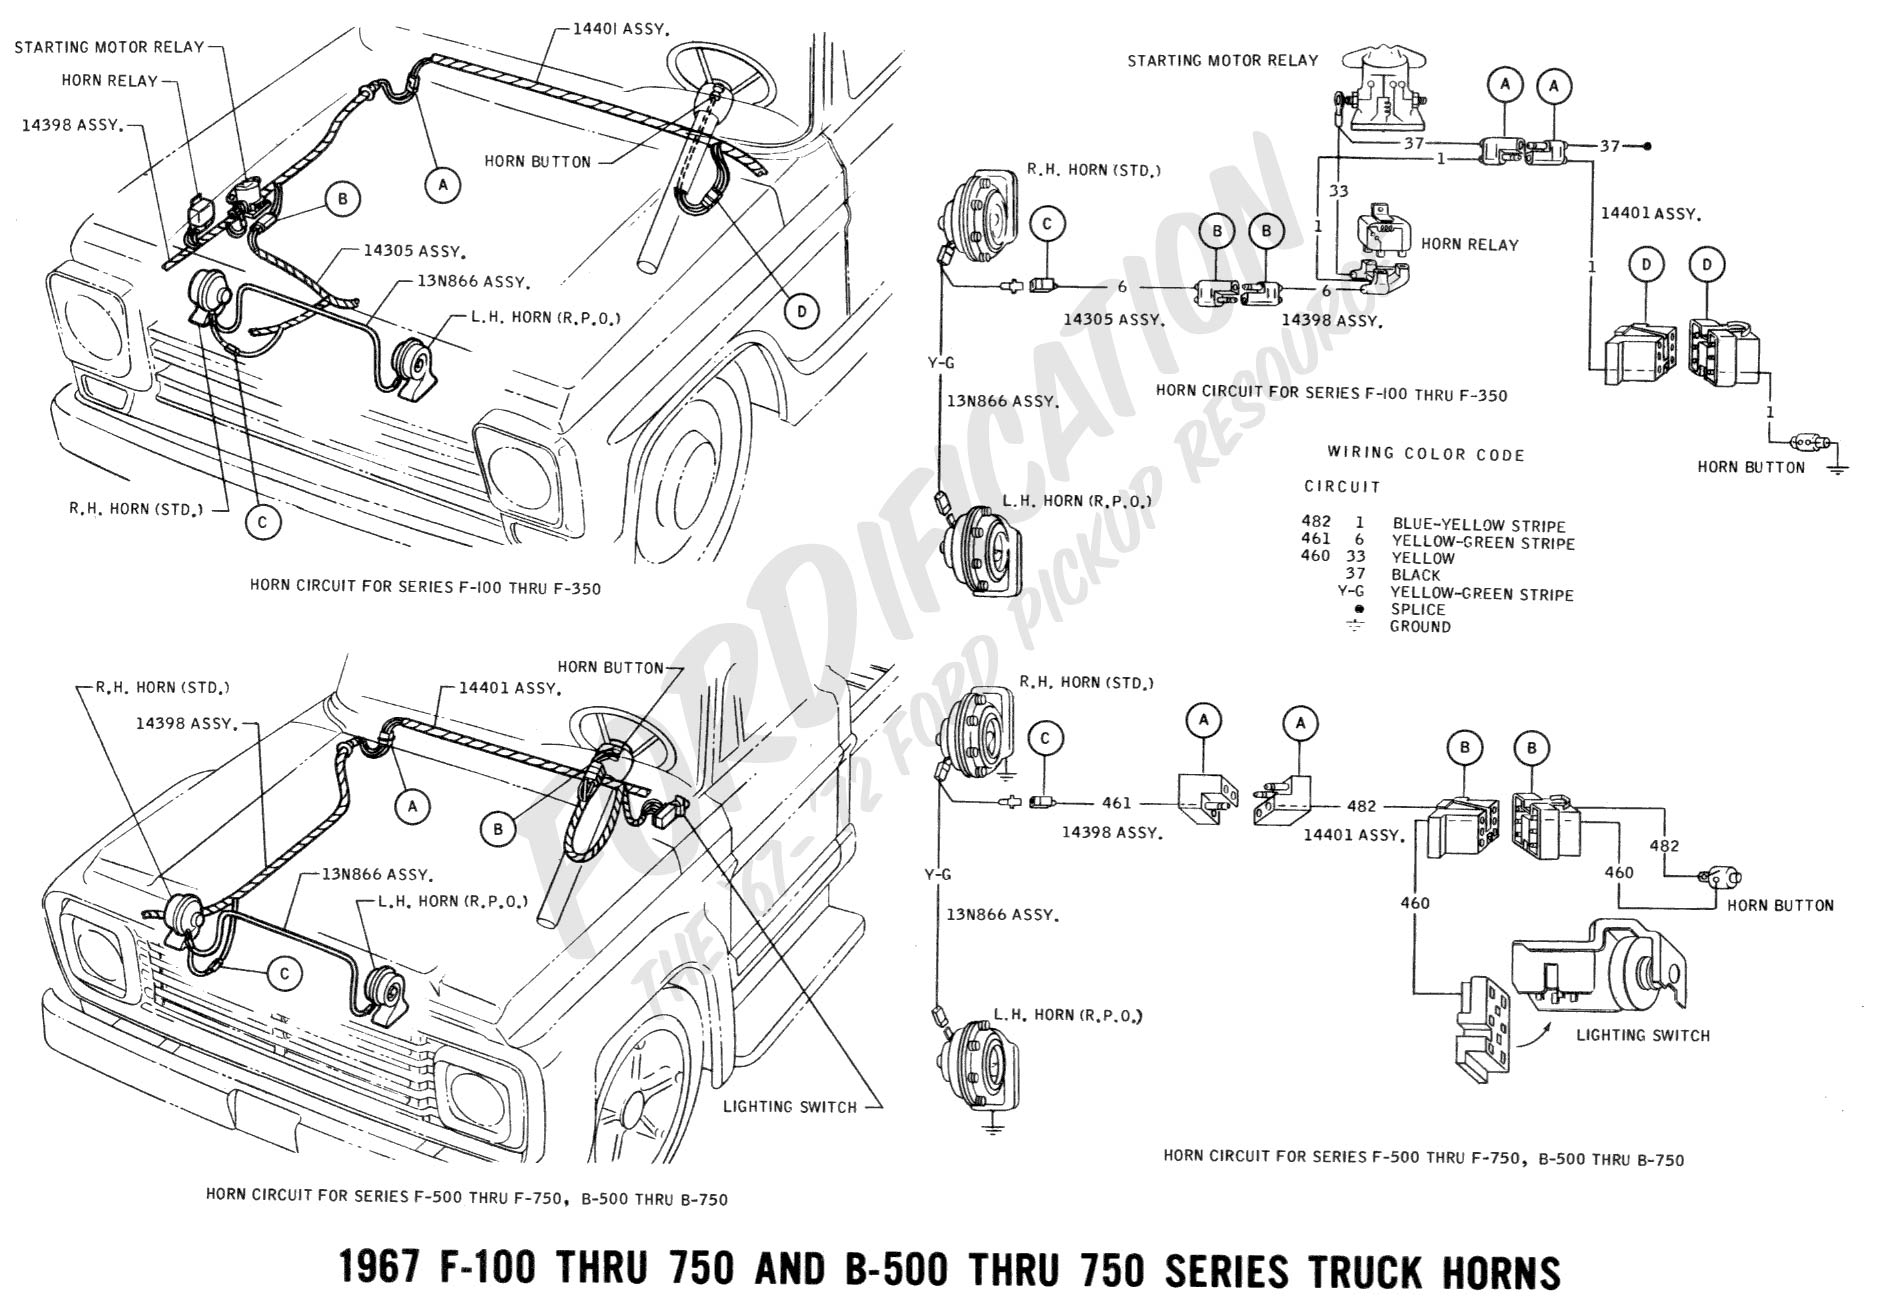 1988 Ford F100 Wiring | Wiring Diagram  Ford Truck Wiring Diagram on 1939 ford wiring diagram, 63 chevy wiring diagram, 49 ford wiring diagram,